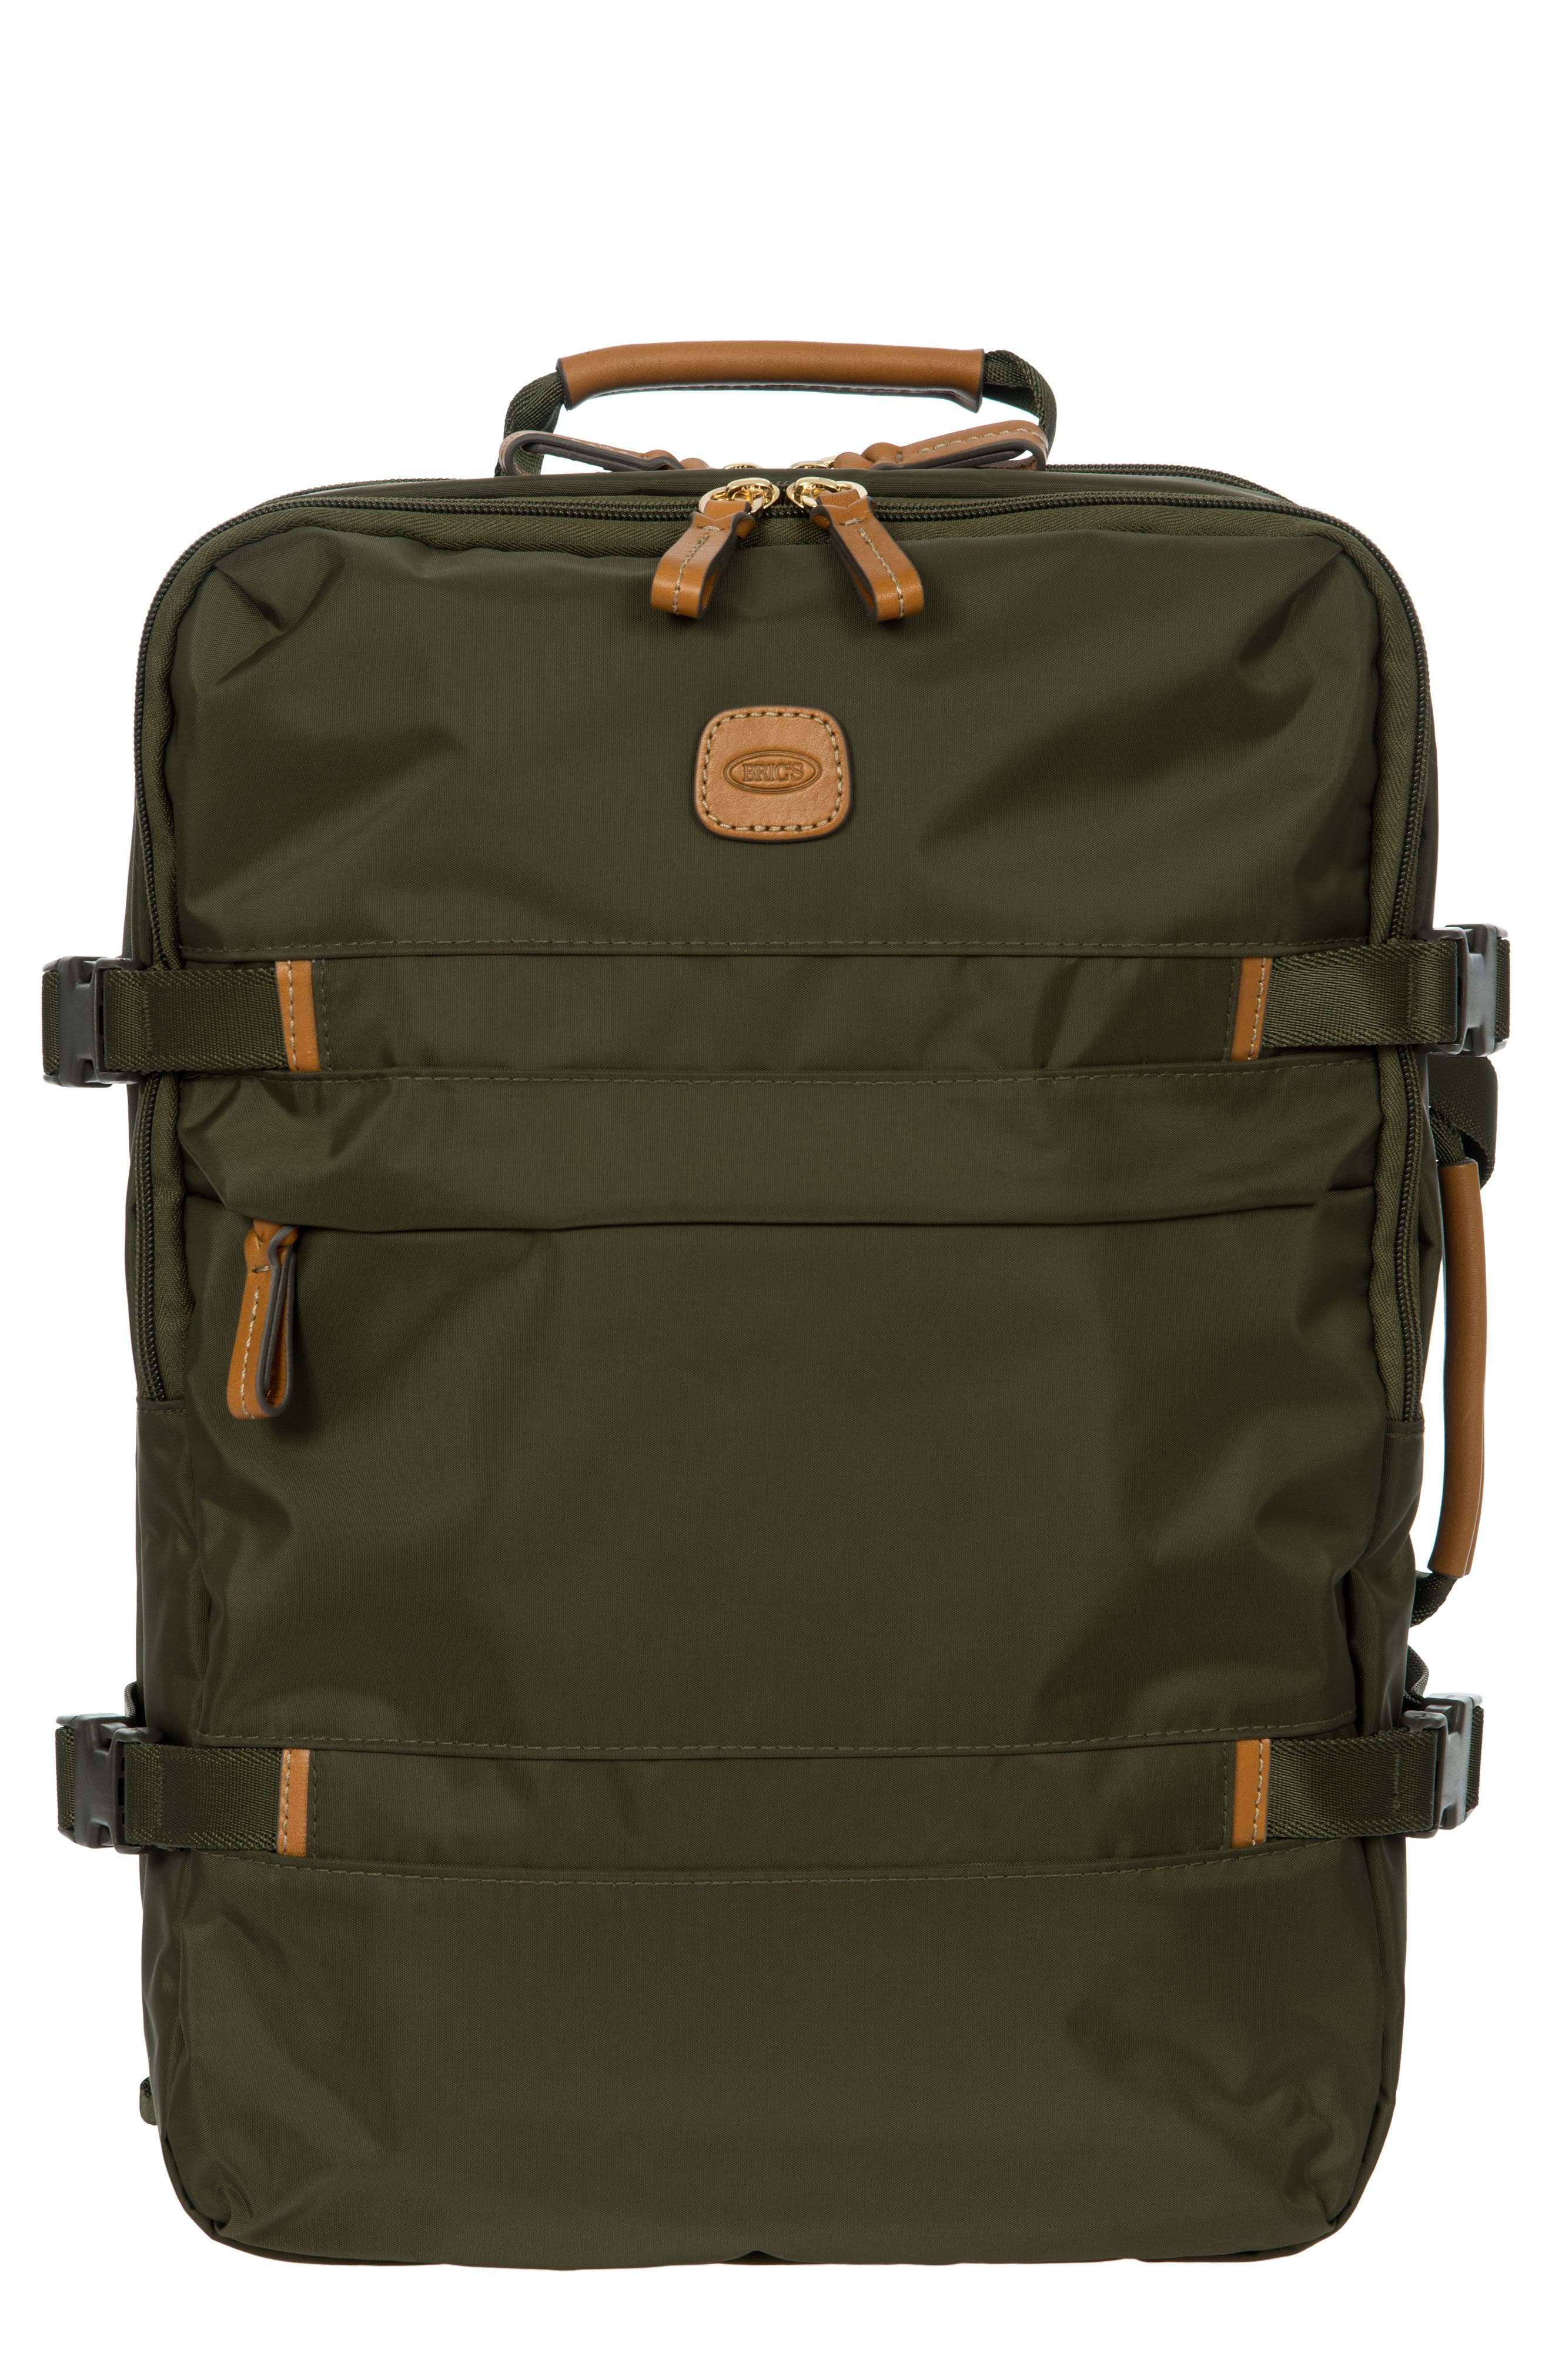 BRIC'S X-Travel Montagna Travel Backpack - Green in Olive